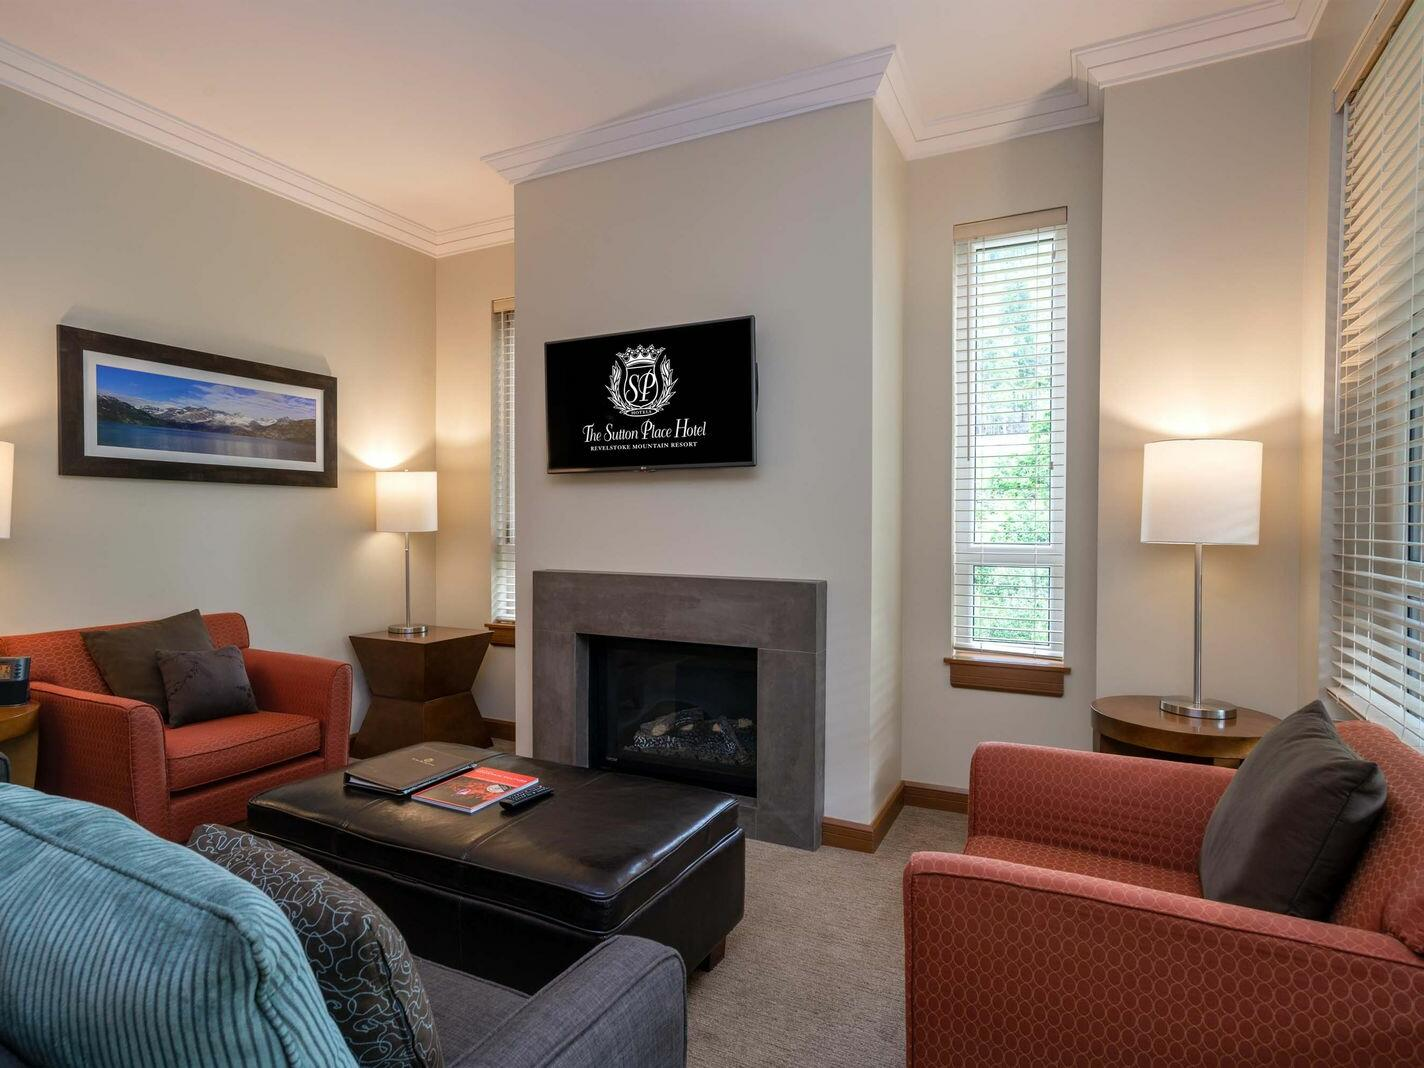 Three Bedroom Premium Suite The Sutton Place Hotel Revelstoke Mountain Resort